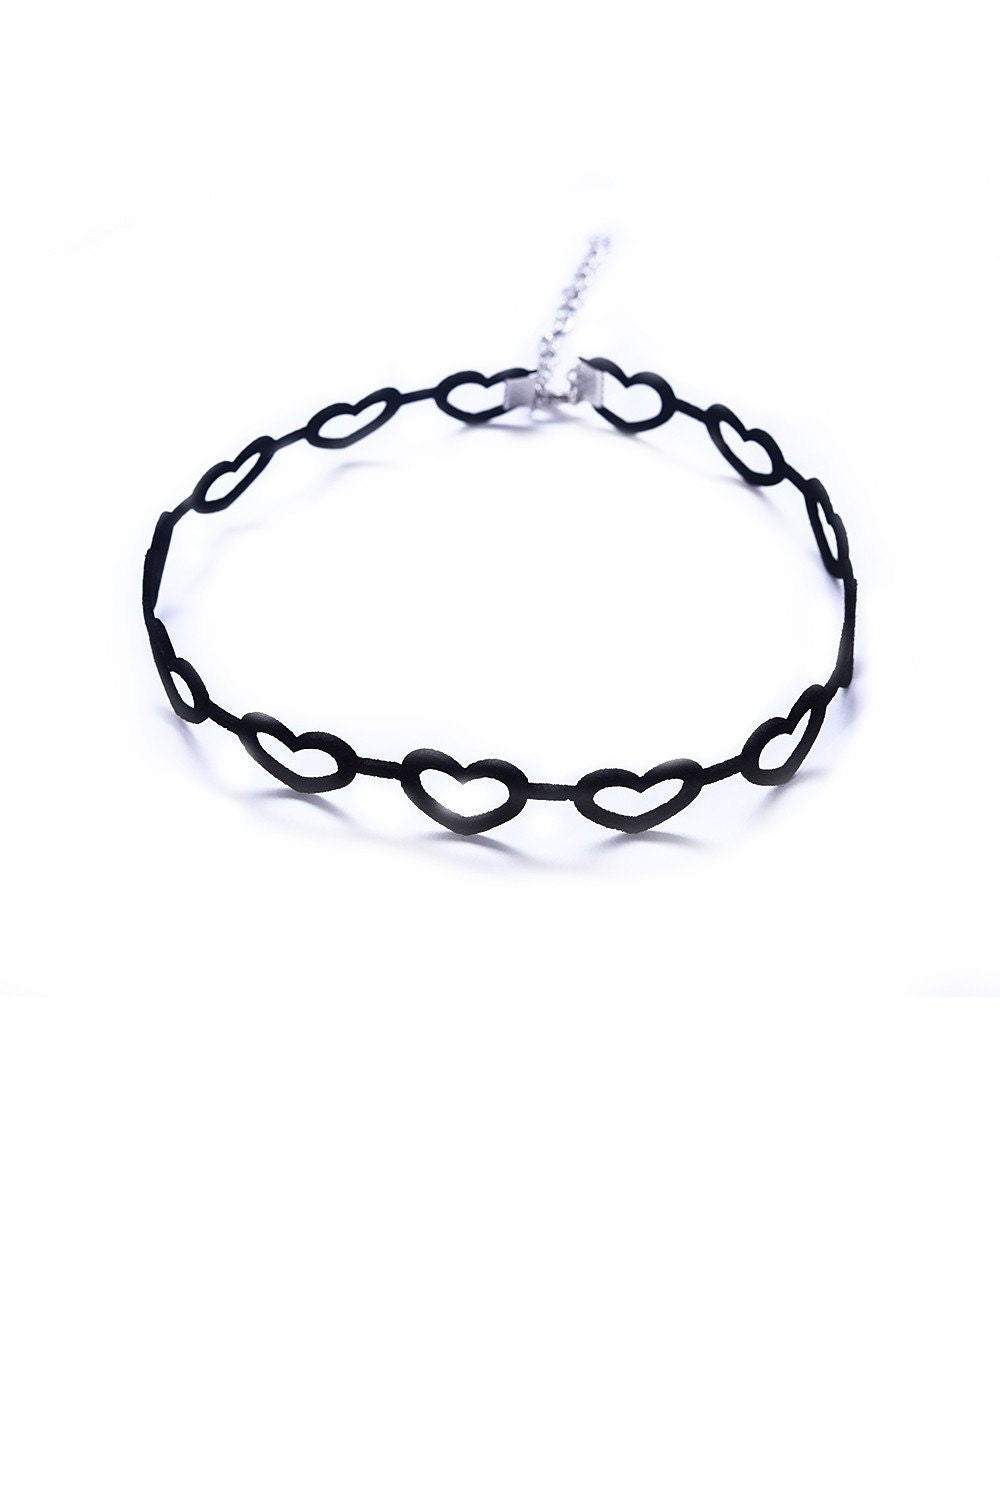 Open Hearts Choker Necklace - Ciduire